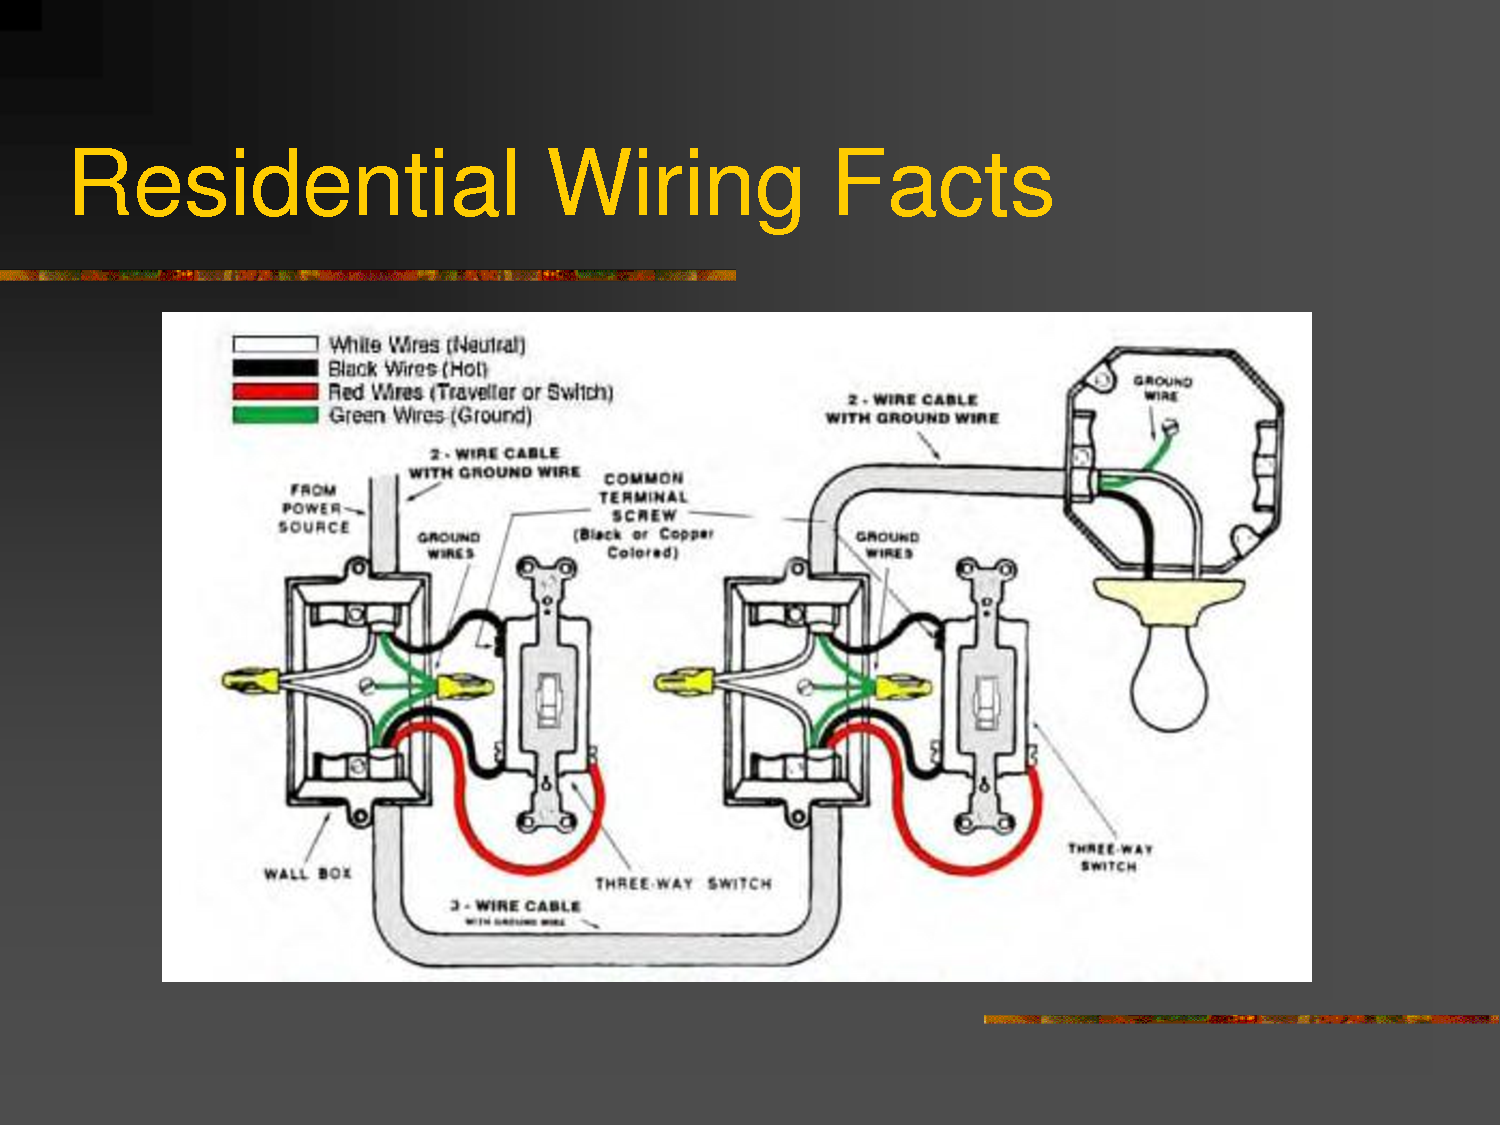 85f6d7068dddf27aa5737fc68962f04e 4 best images of residential wiring diagrams house electrical residential wire diagrams at gsmportal.co